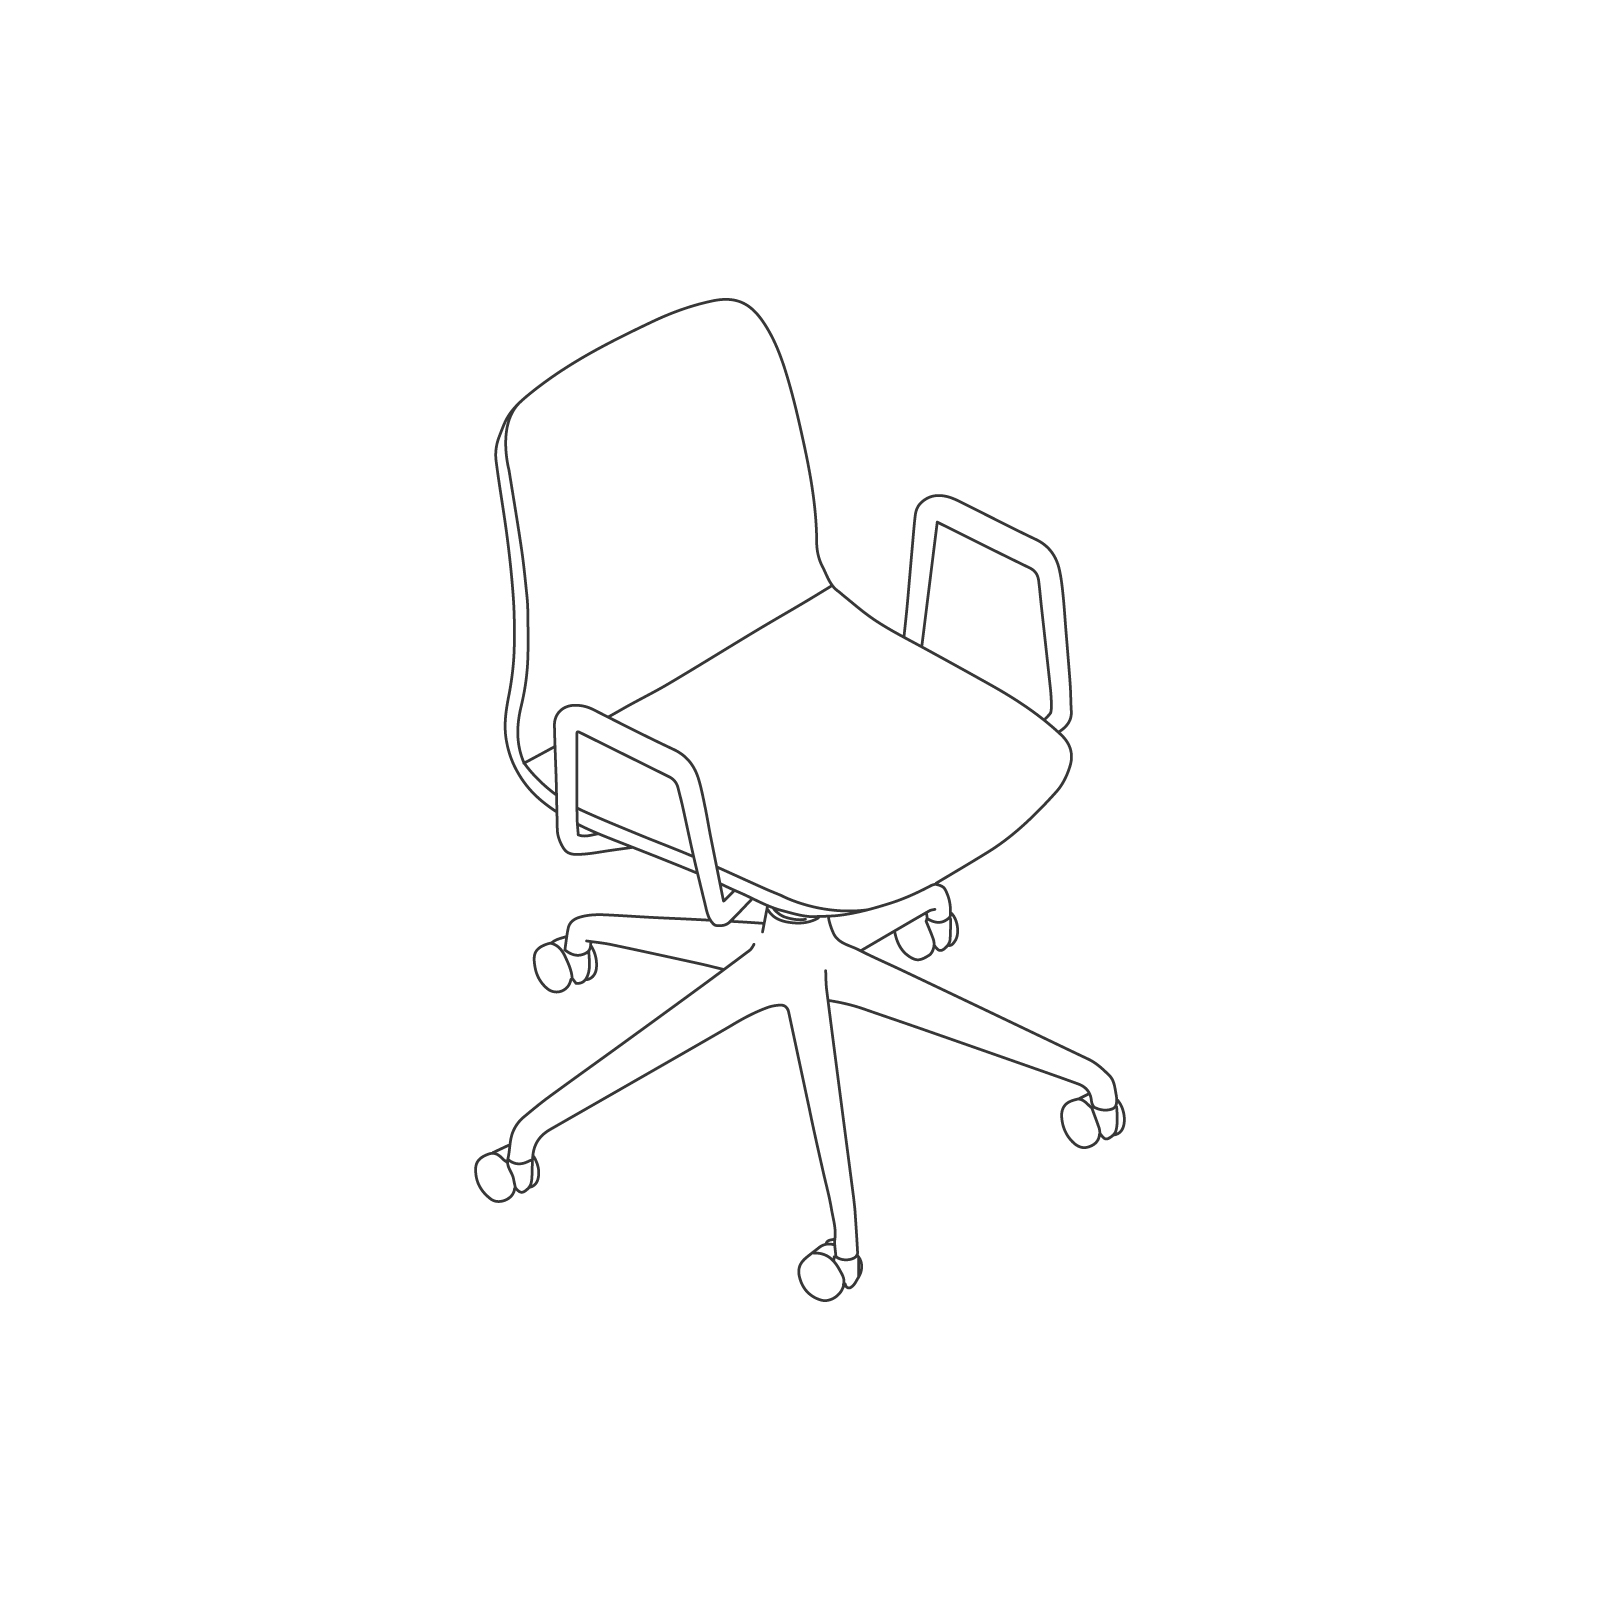 A line drawing of Viv Chair–With Arms 5-Star Caster Base.